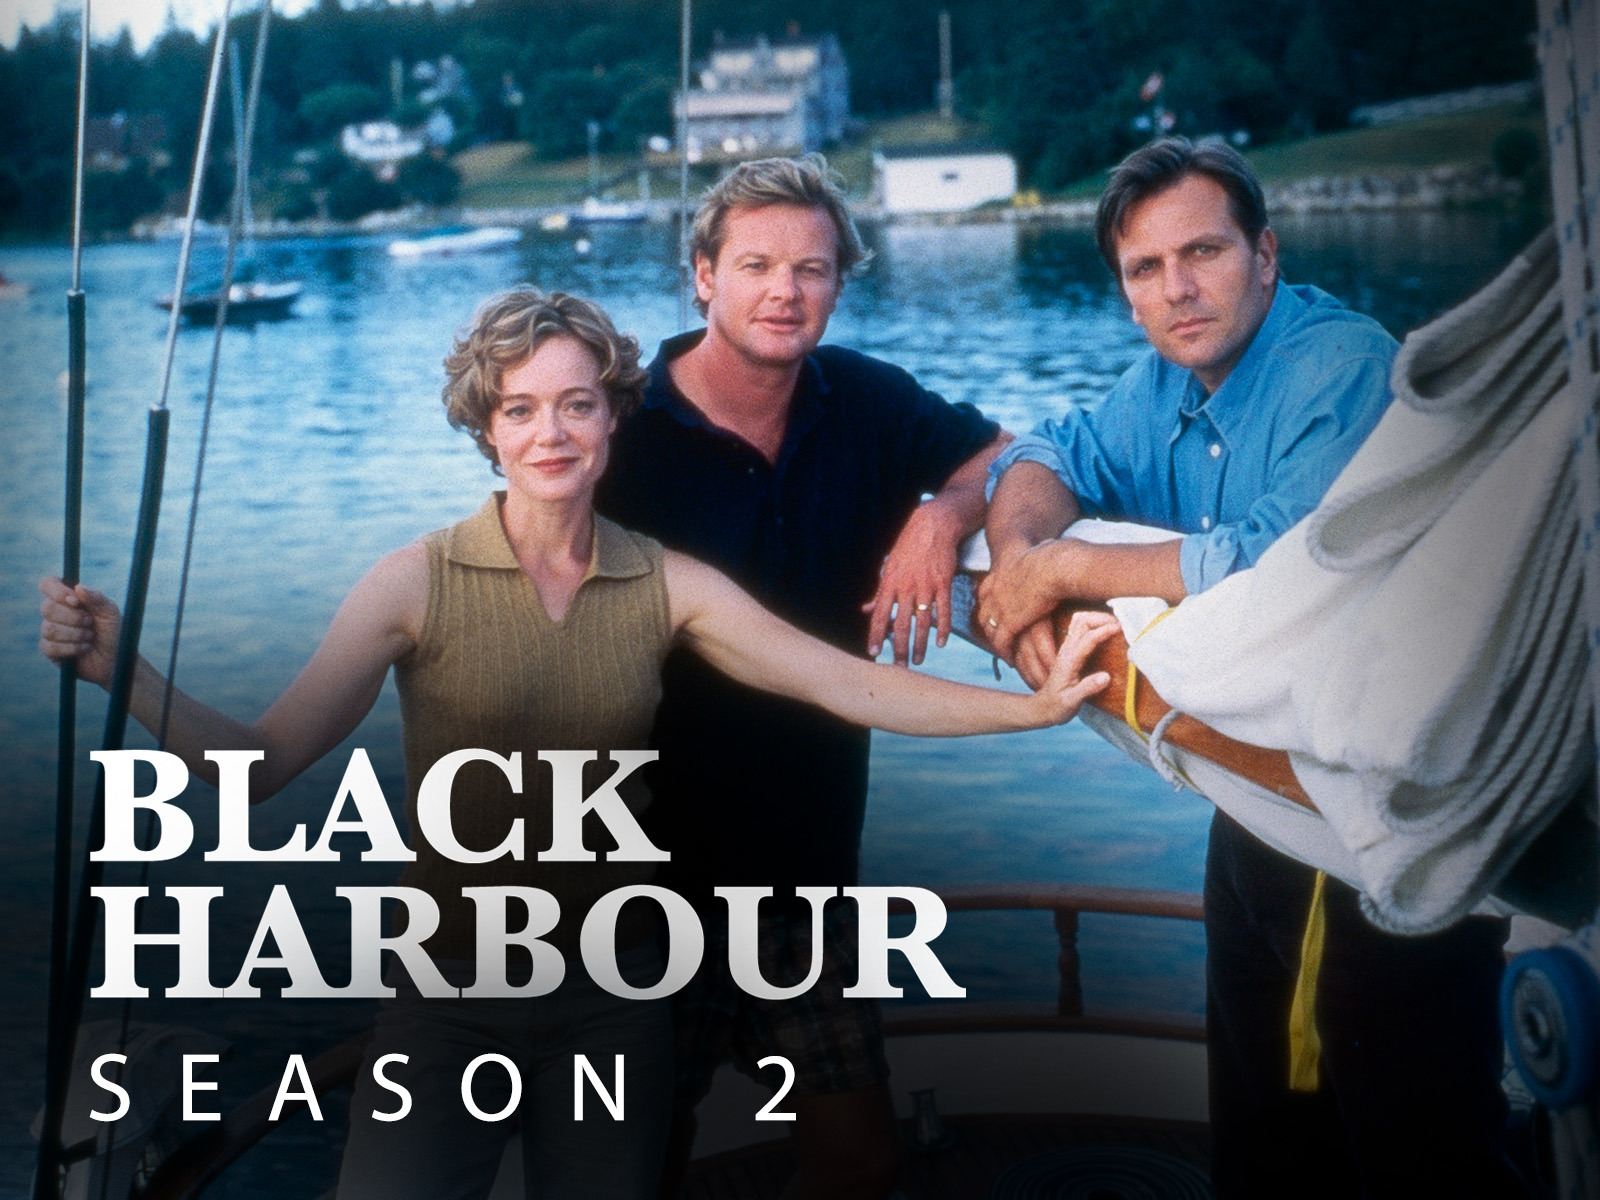 Watch Black Harbour Season 2 Episode 7: Love's Labours Lost Online